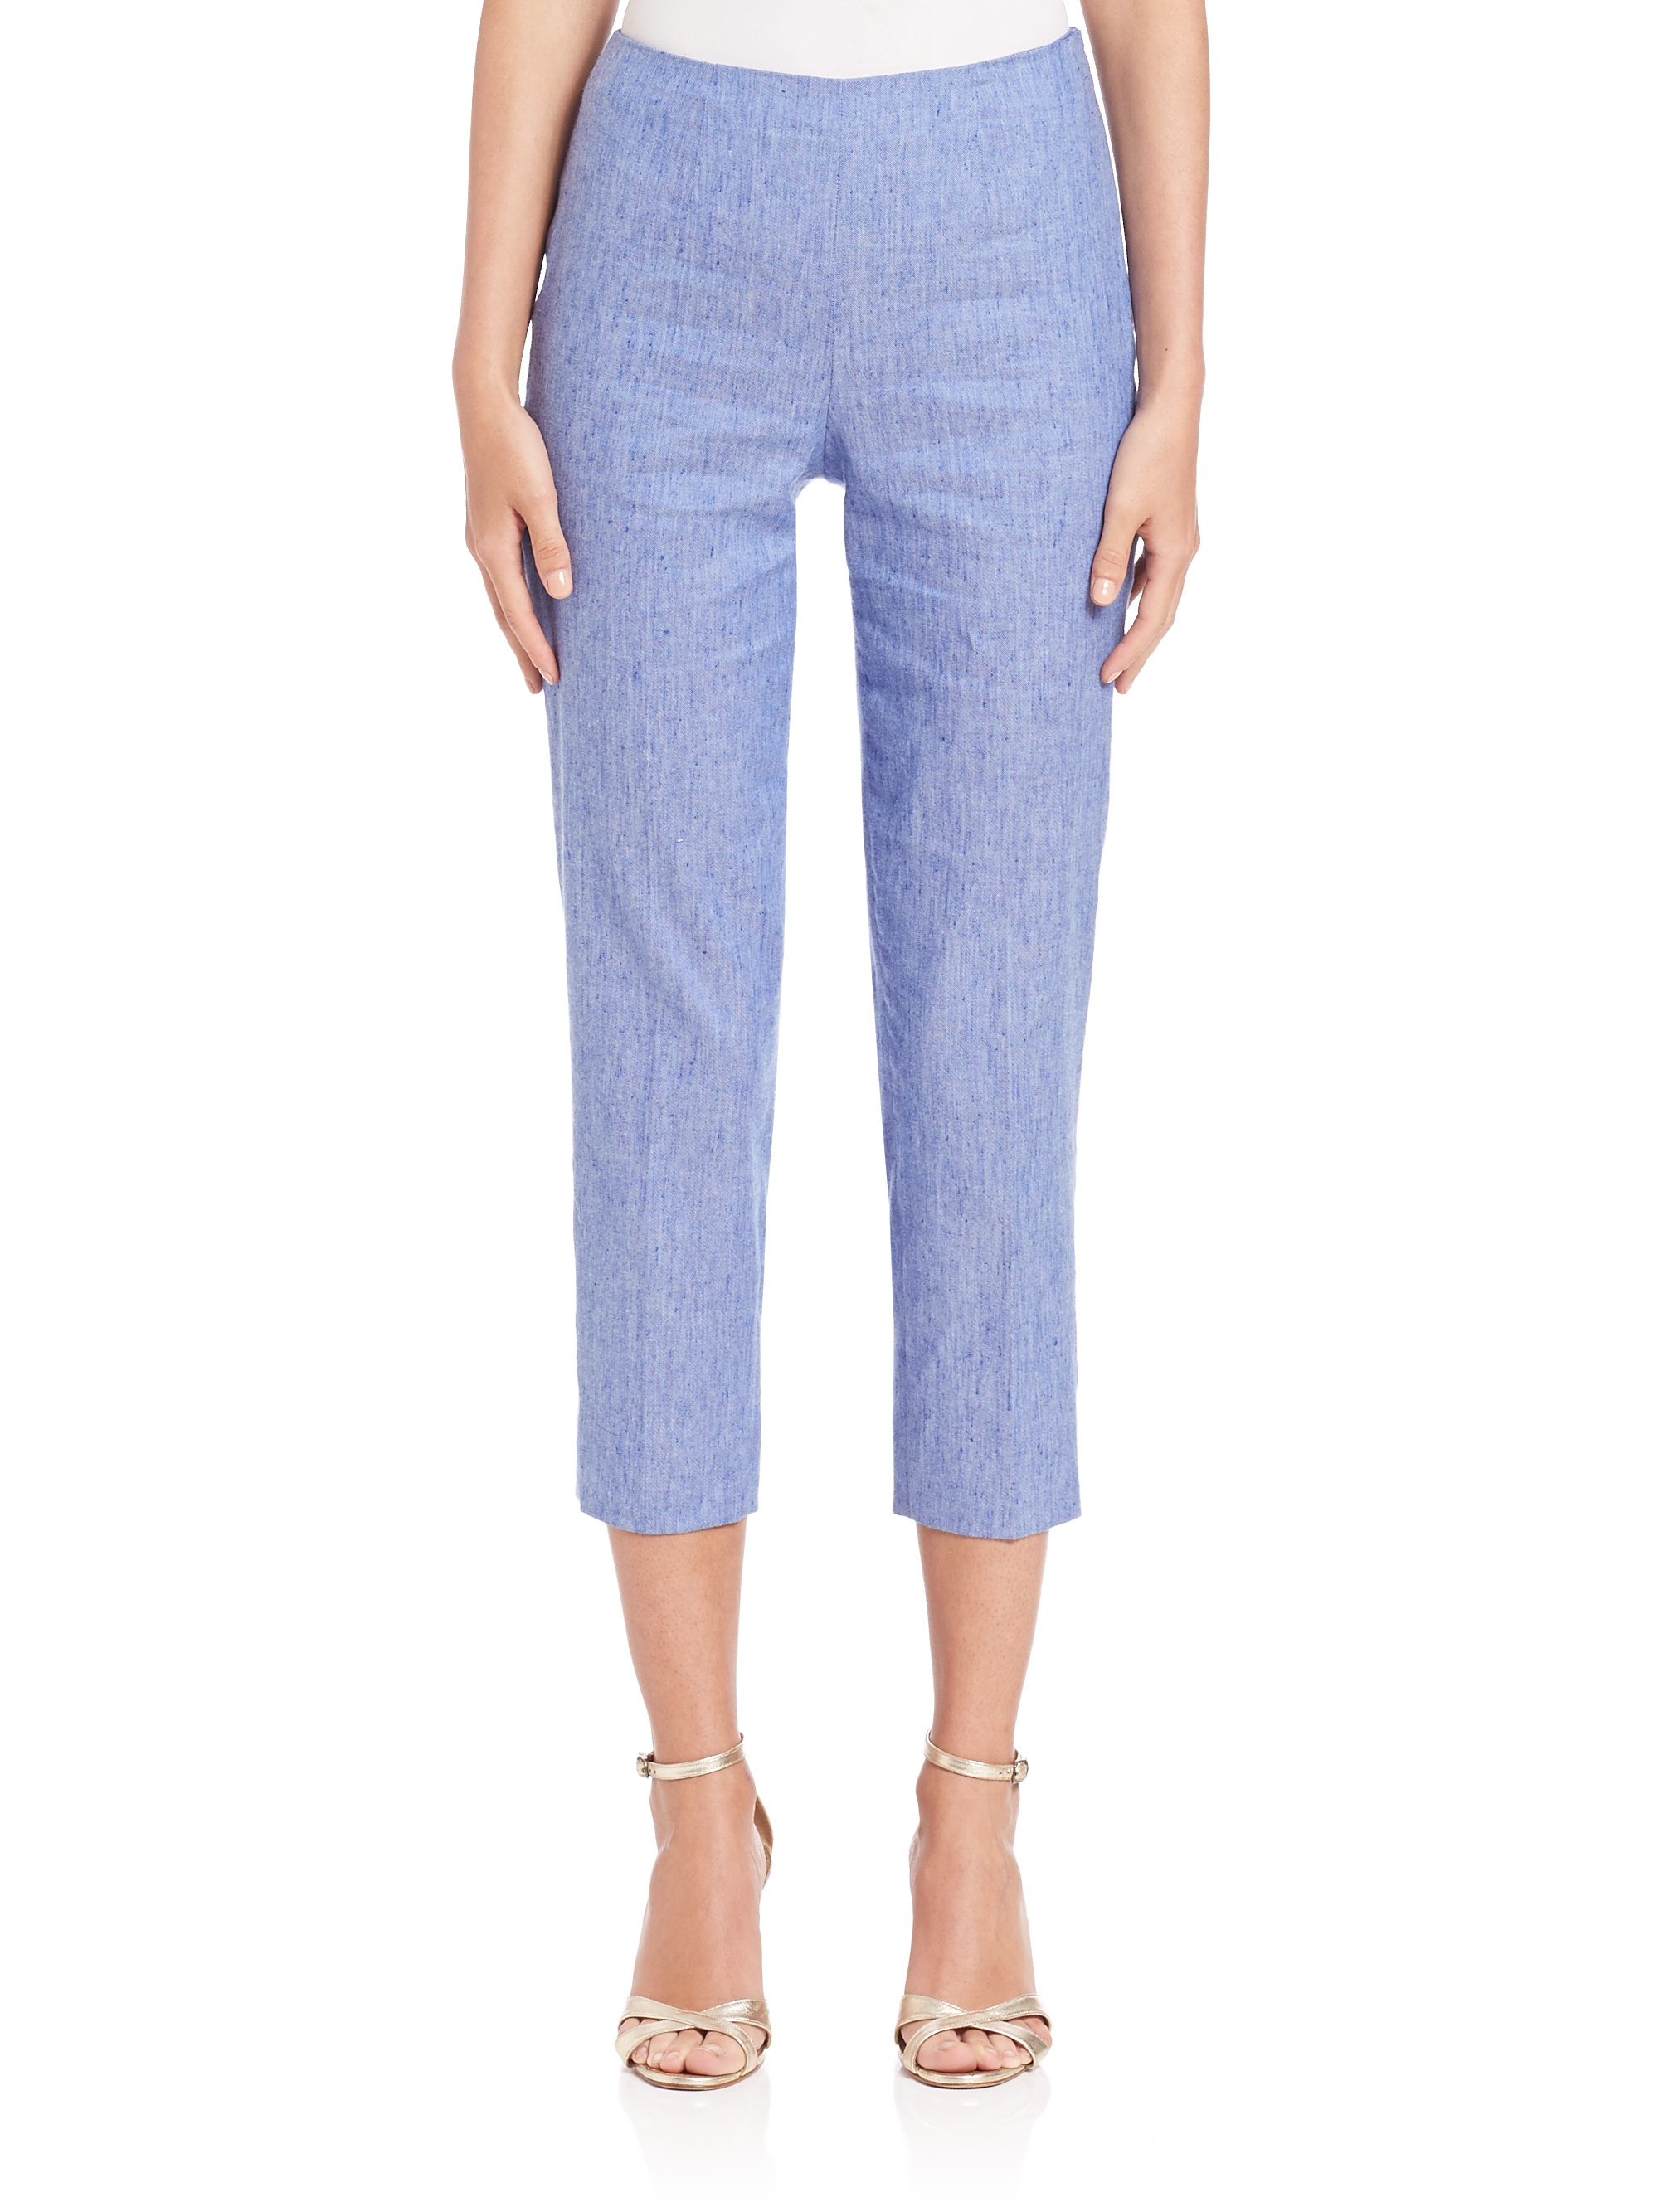 Piazza sempione chambray audrey pants in blue blue white for Chambray jeans